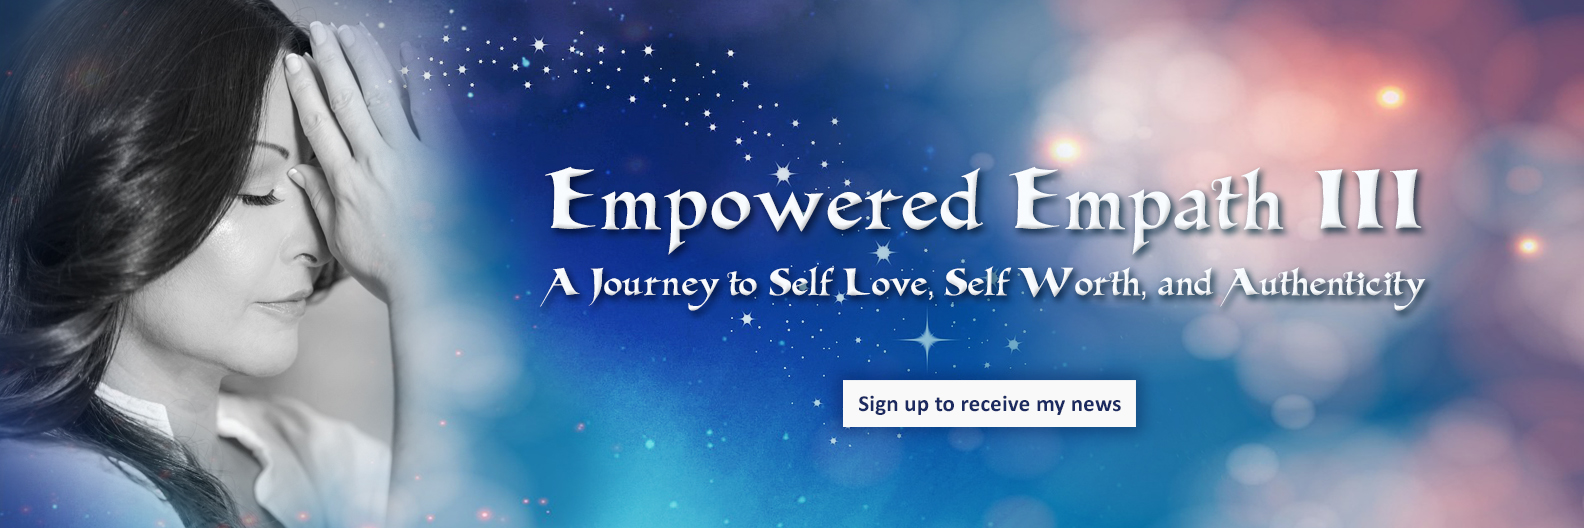 Empowered Empath 111 - Psychic and Intuitive Healing